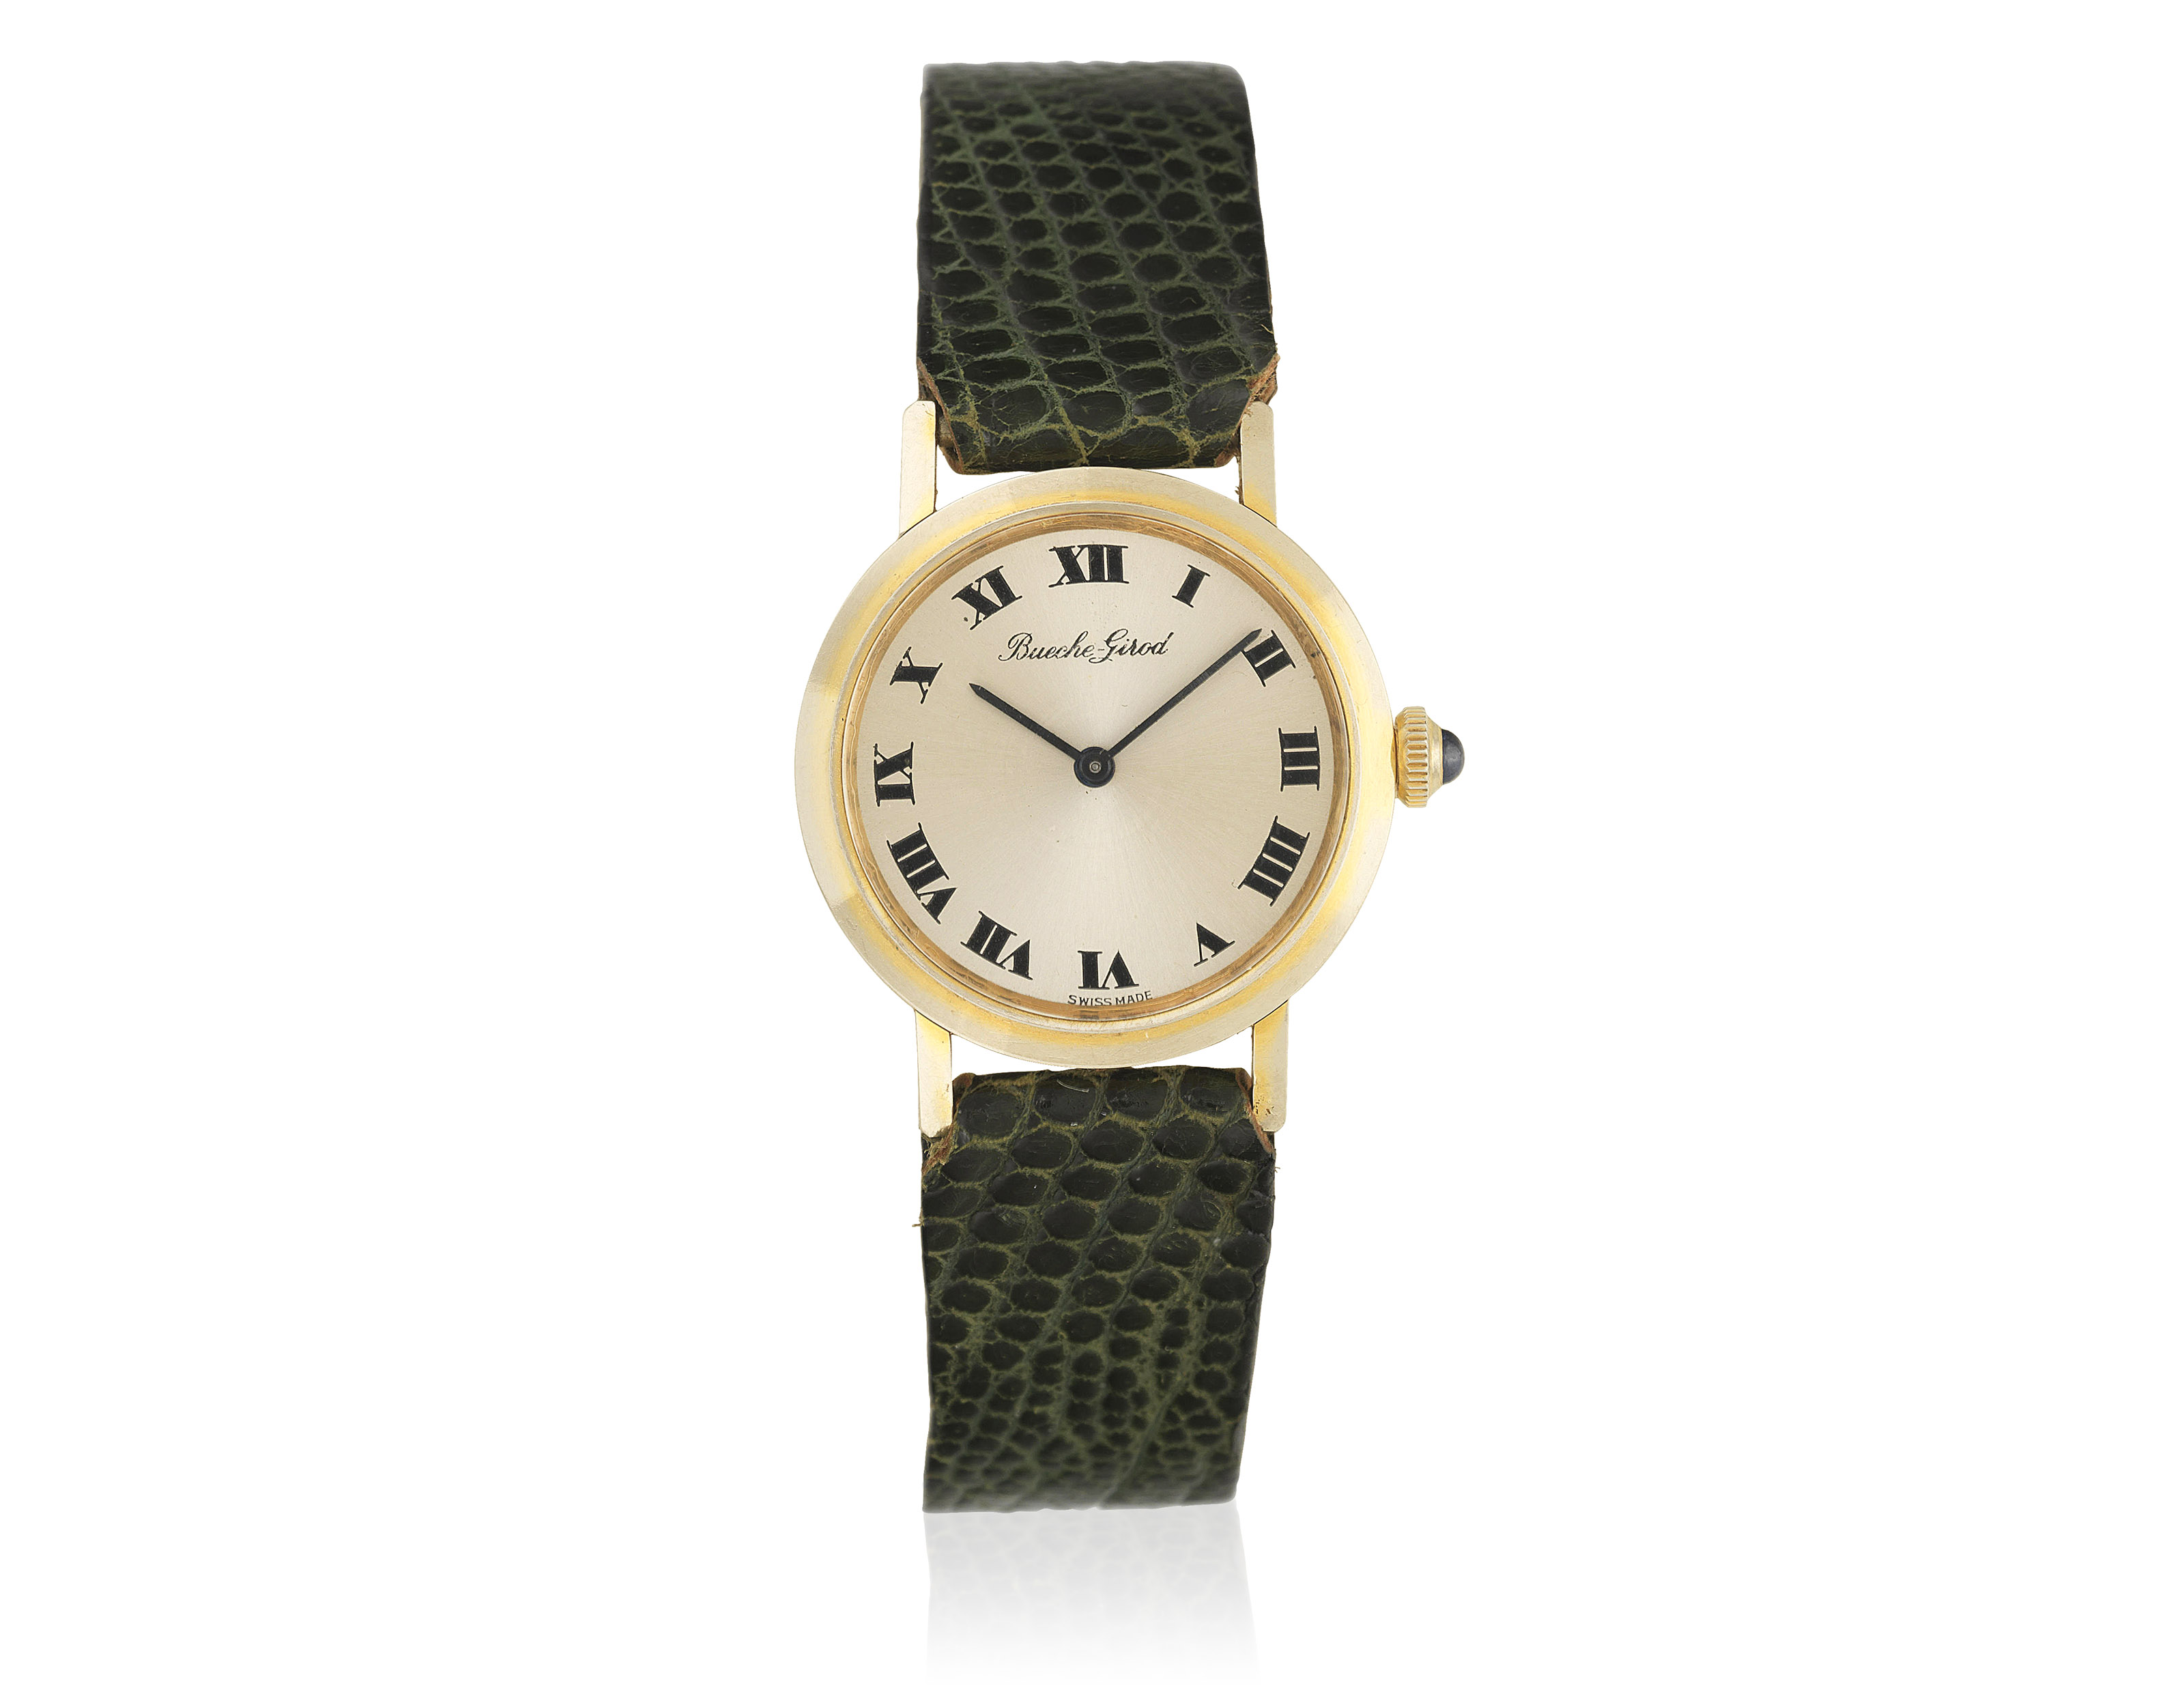 en watches bueche girod watch antique jewellery ladycode piaget